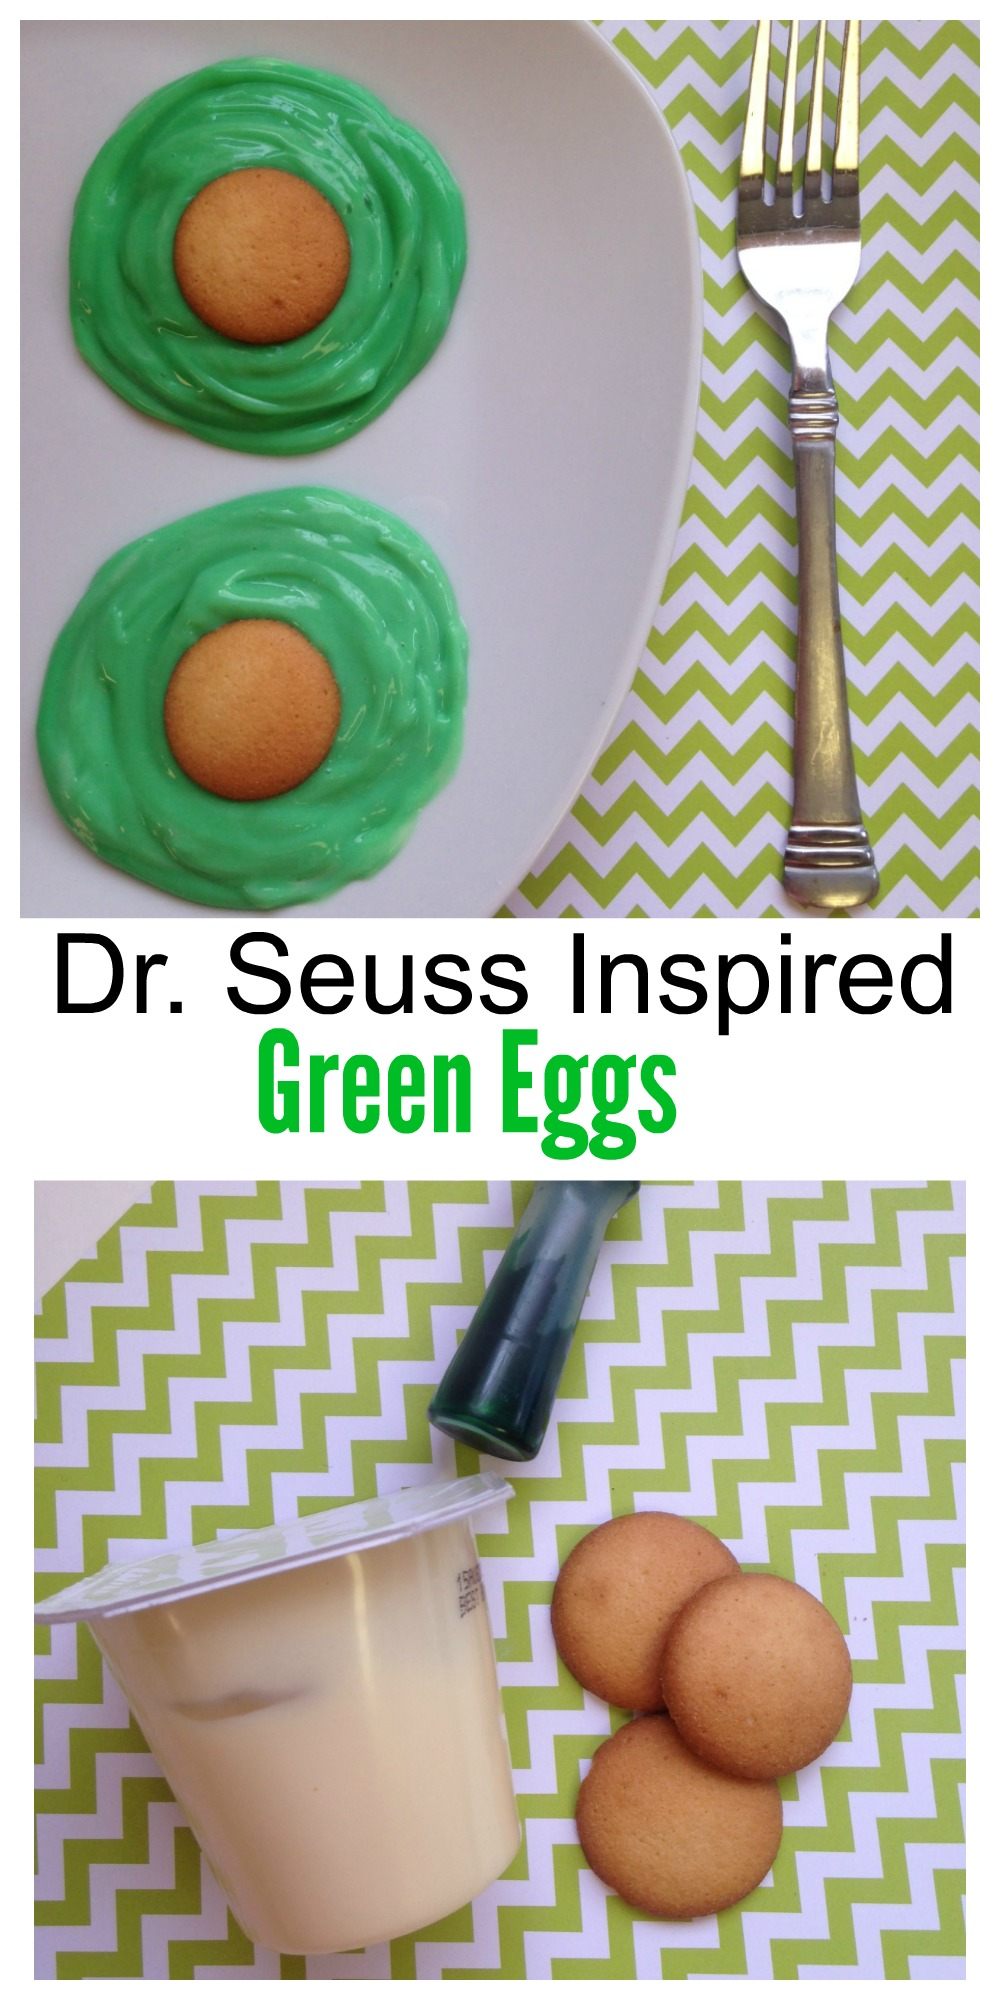 The book Green Eggs and Ham is no doubt a favorite amongst children, which is why this Dr. Seuss Green Eggs snack is sure to be a hit in your house.